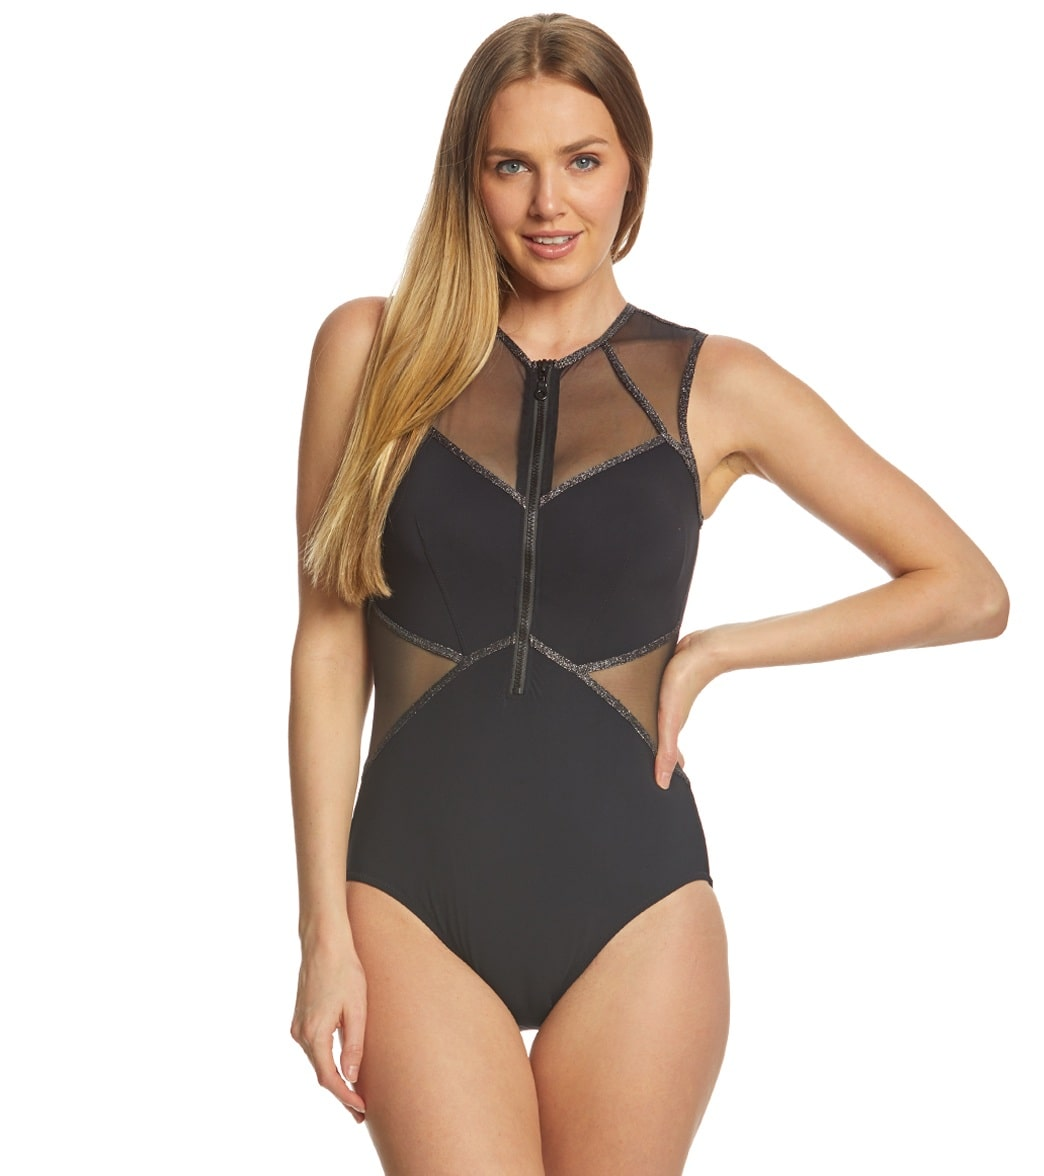 a10c03f903 Profile by Gottex Stargazer High Neck One Piece Swimsuit at SwimOutlet.com  - Free Shipping